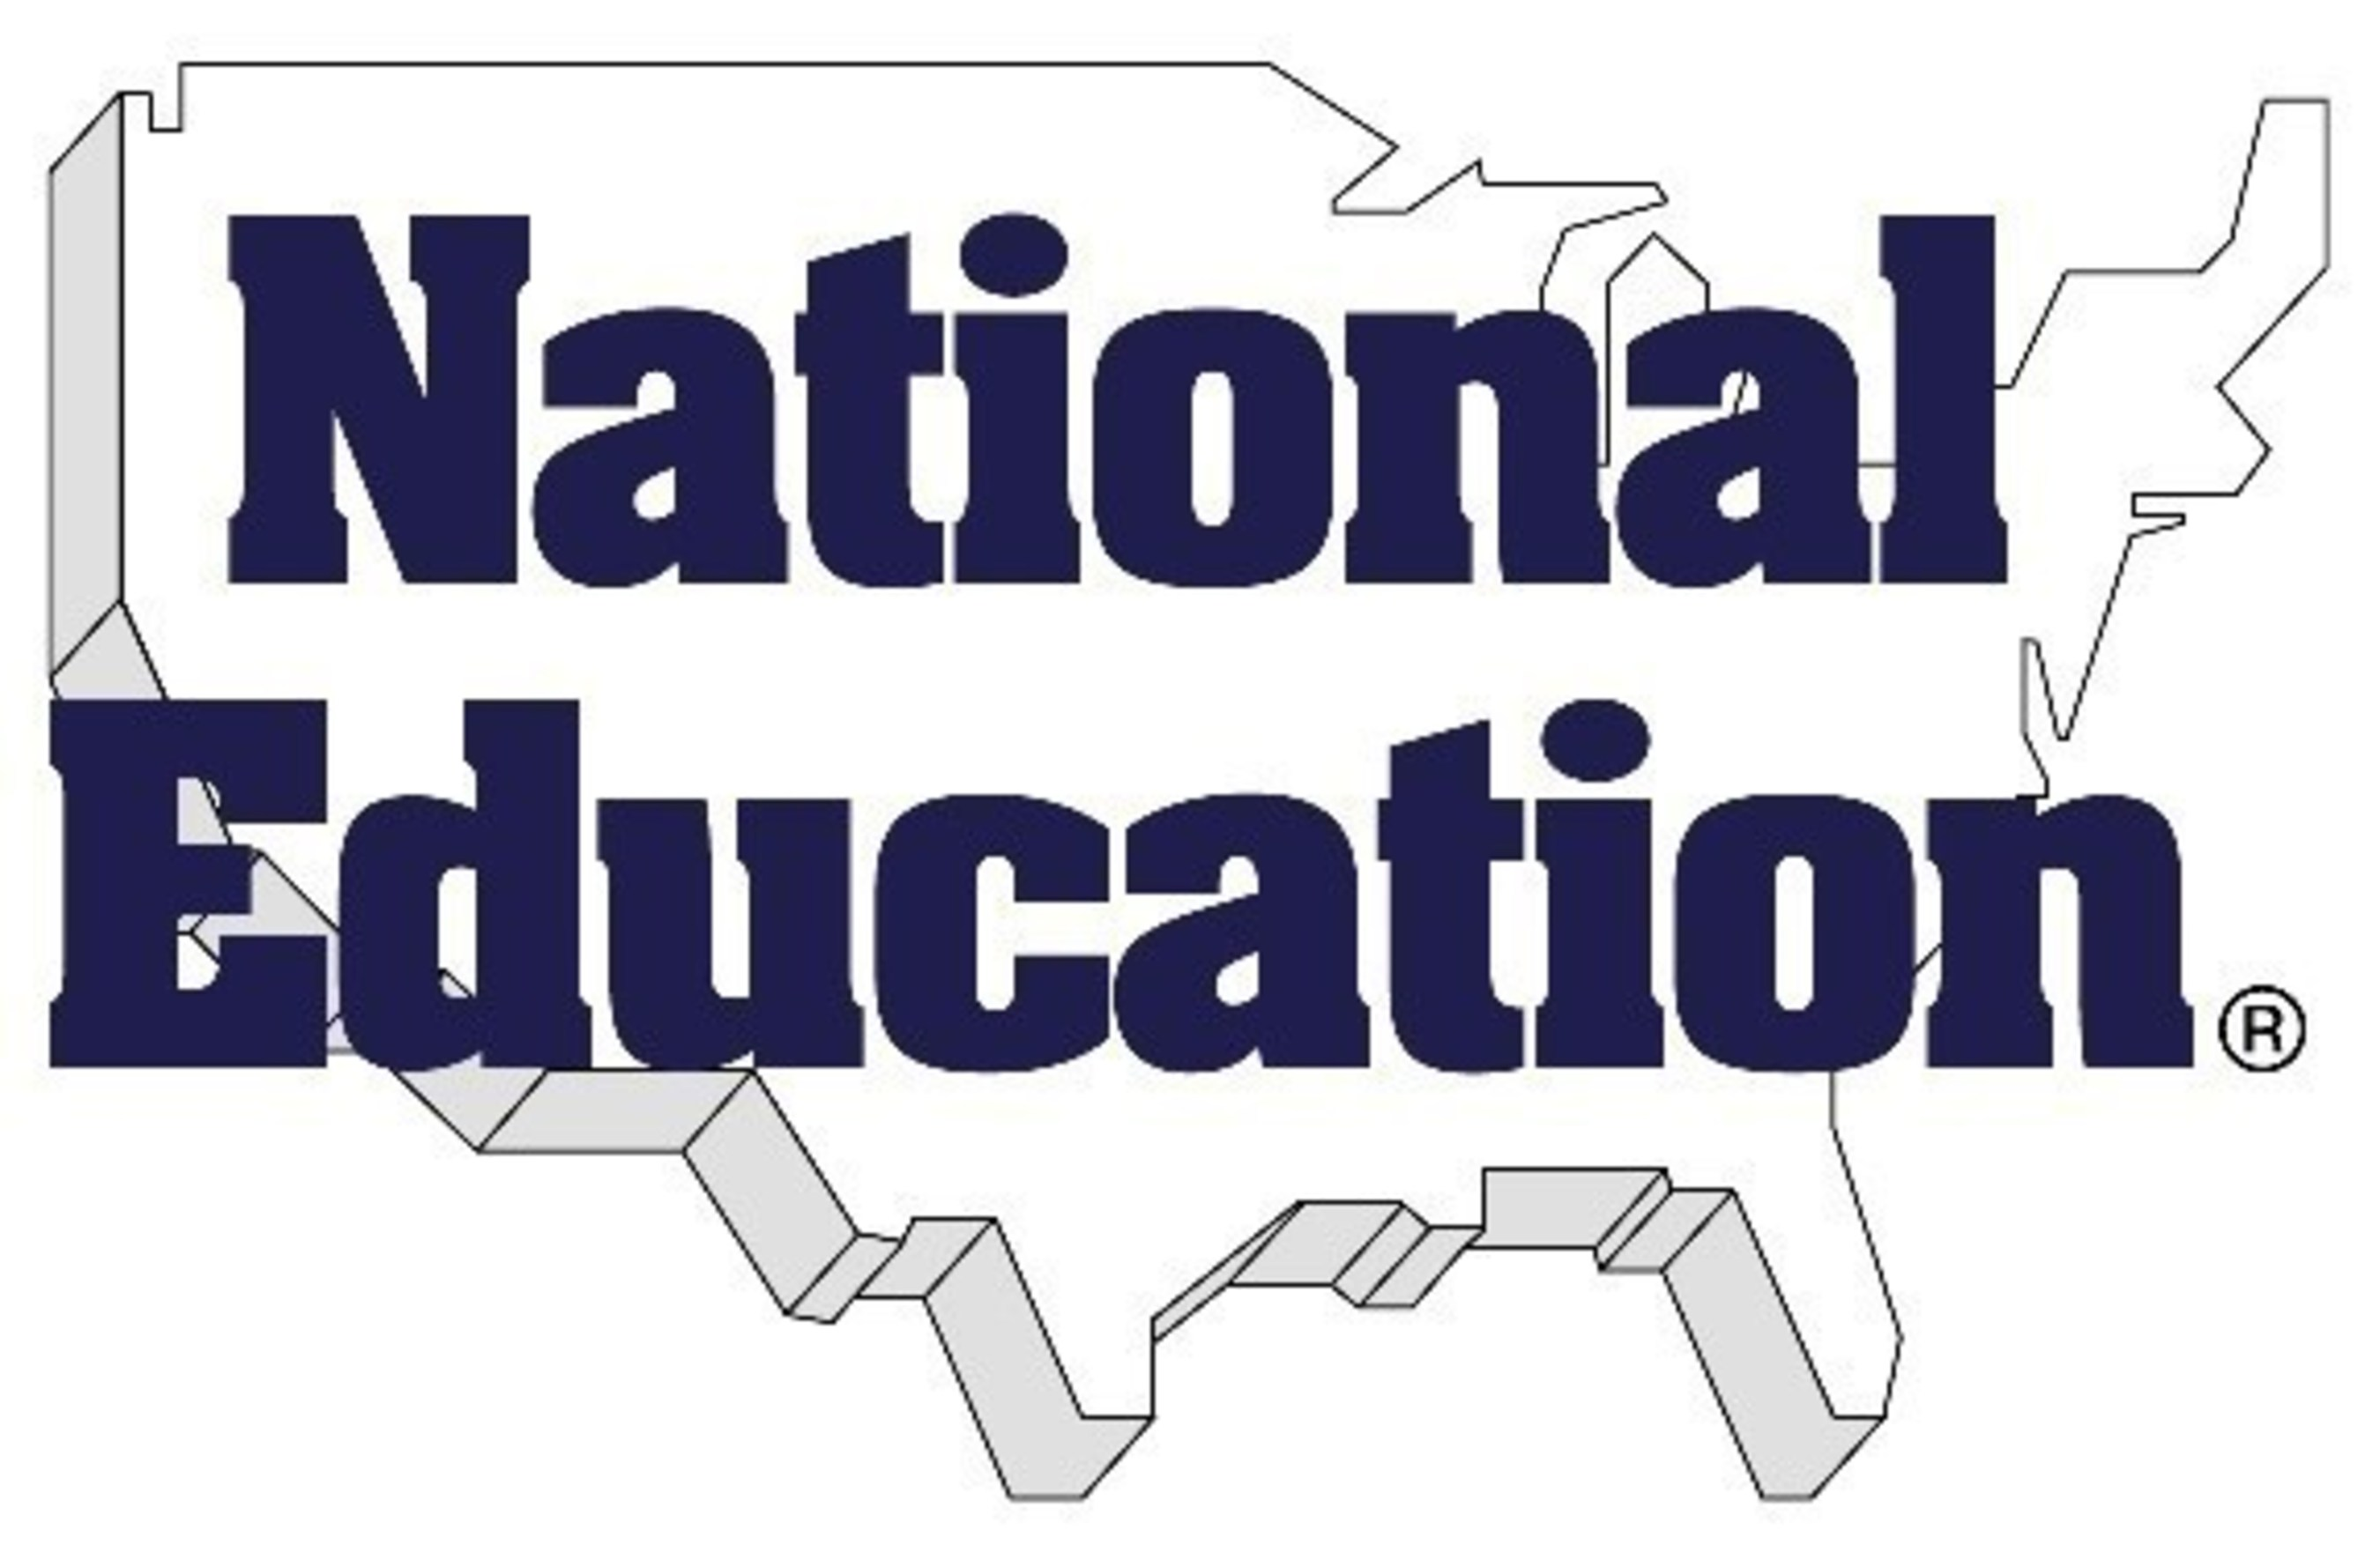 National Education receives positive marks from borrowers on customer service survey after recent web redesign